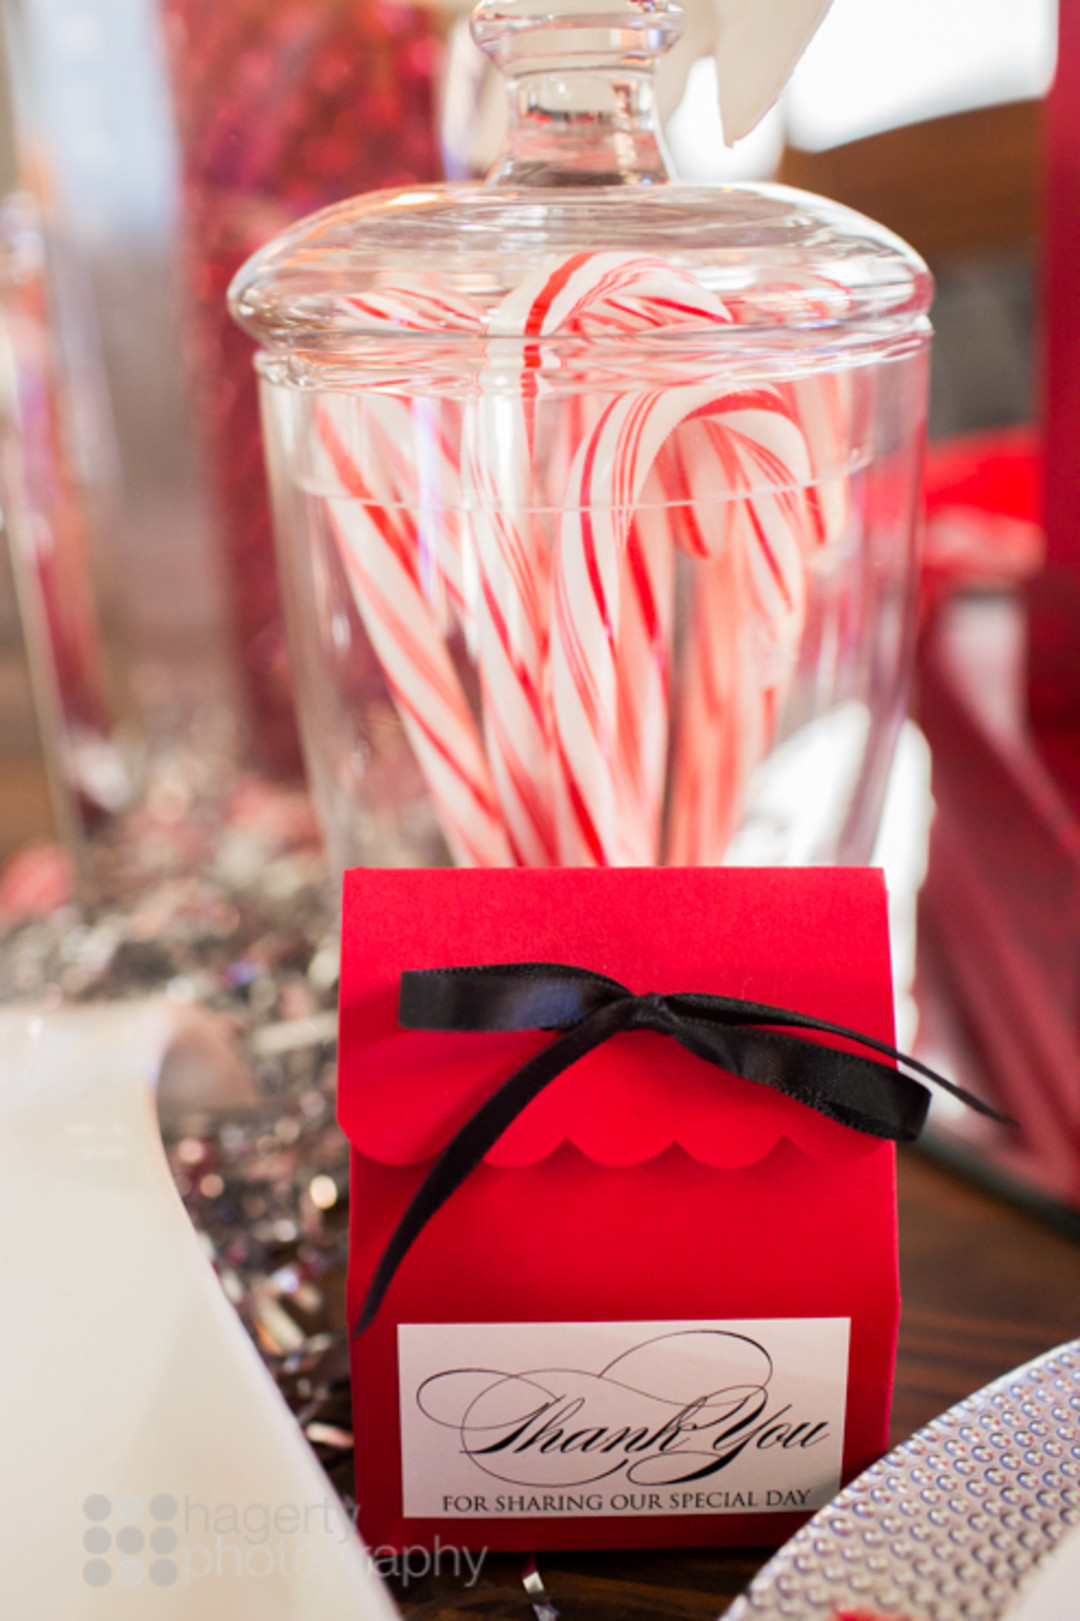 candy canes in glass jar and red favor box tied with black satin bow